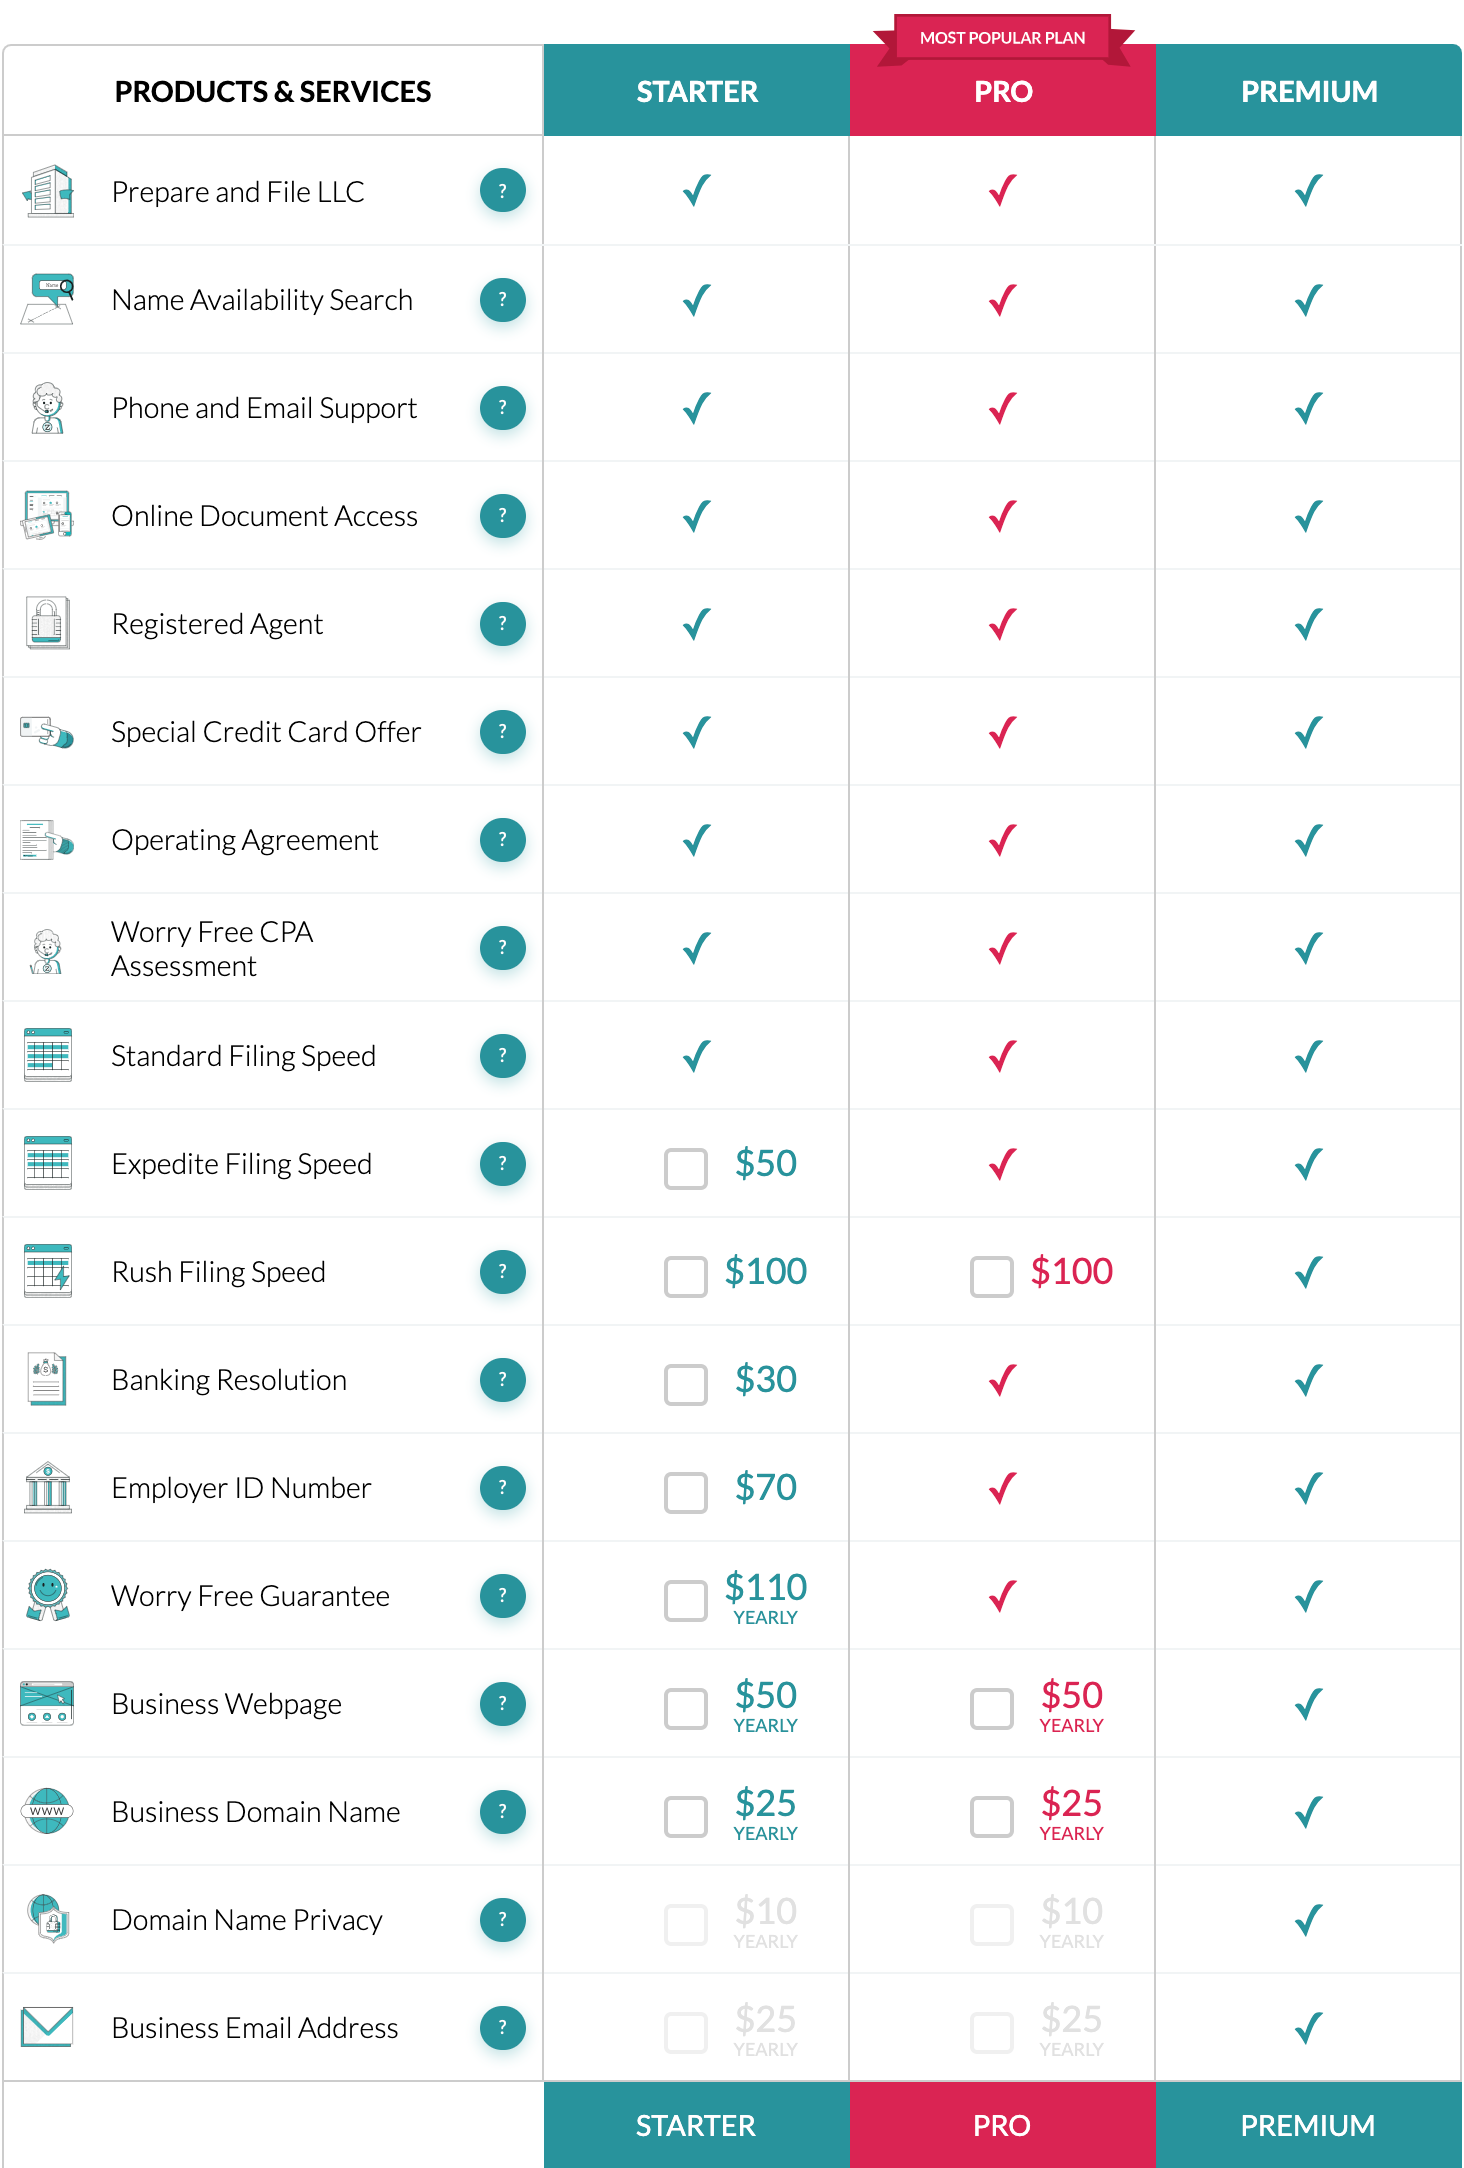 features comparison of ZenBusiness Plans